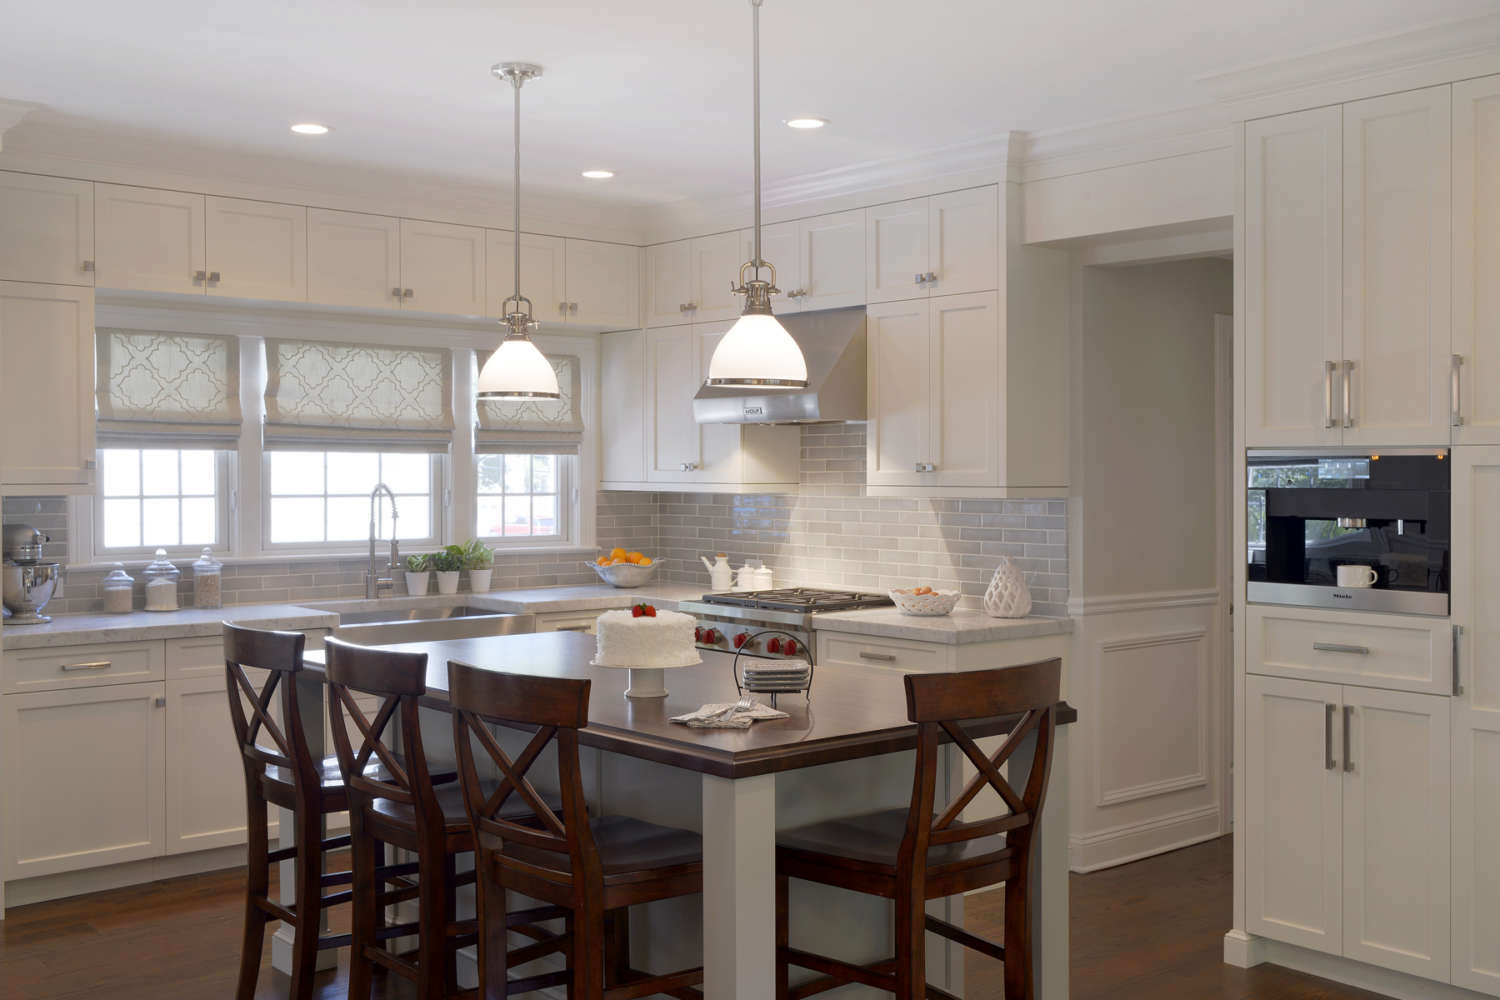 L-shaped transitional kitchen features island with seating and fully custom, double-tiered white painted shaker style Bilotta Cabinetry. Dove gray subway tiles and monochromatic fabric roman shades bring warmth to the room. Design by Jeni Spaeth of Bilotta Kitchens.